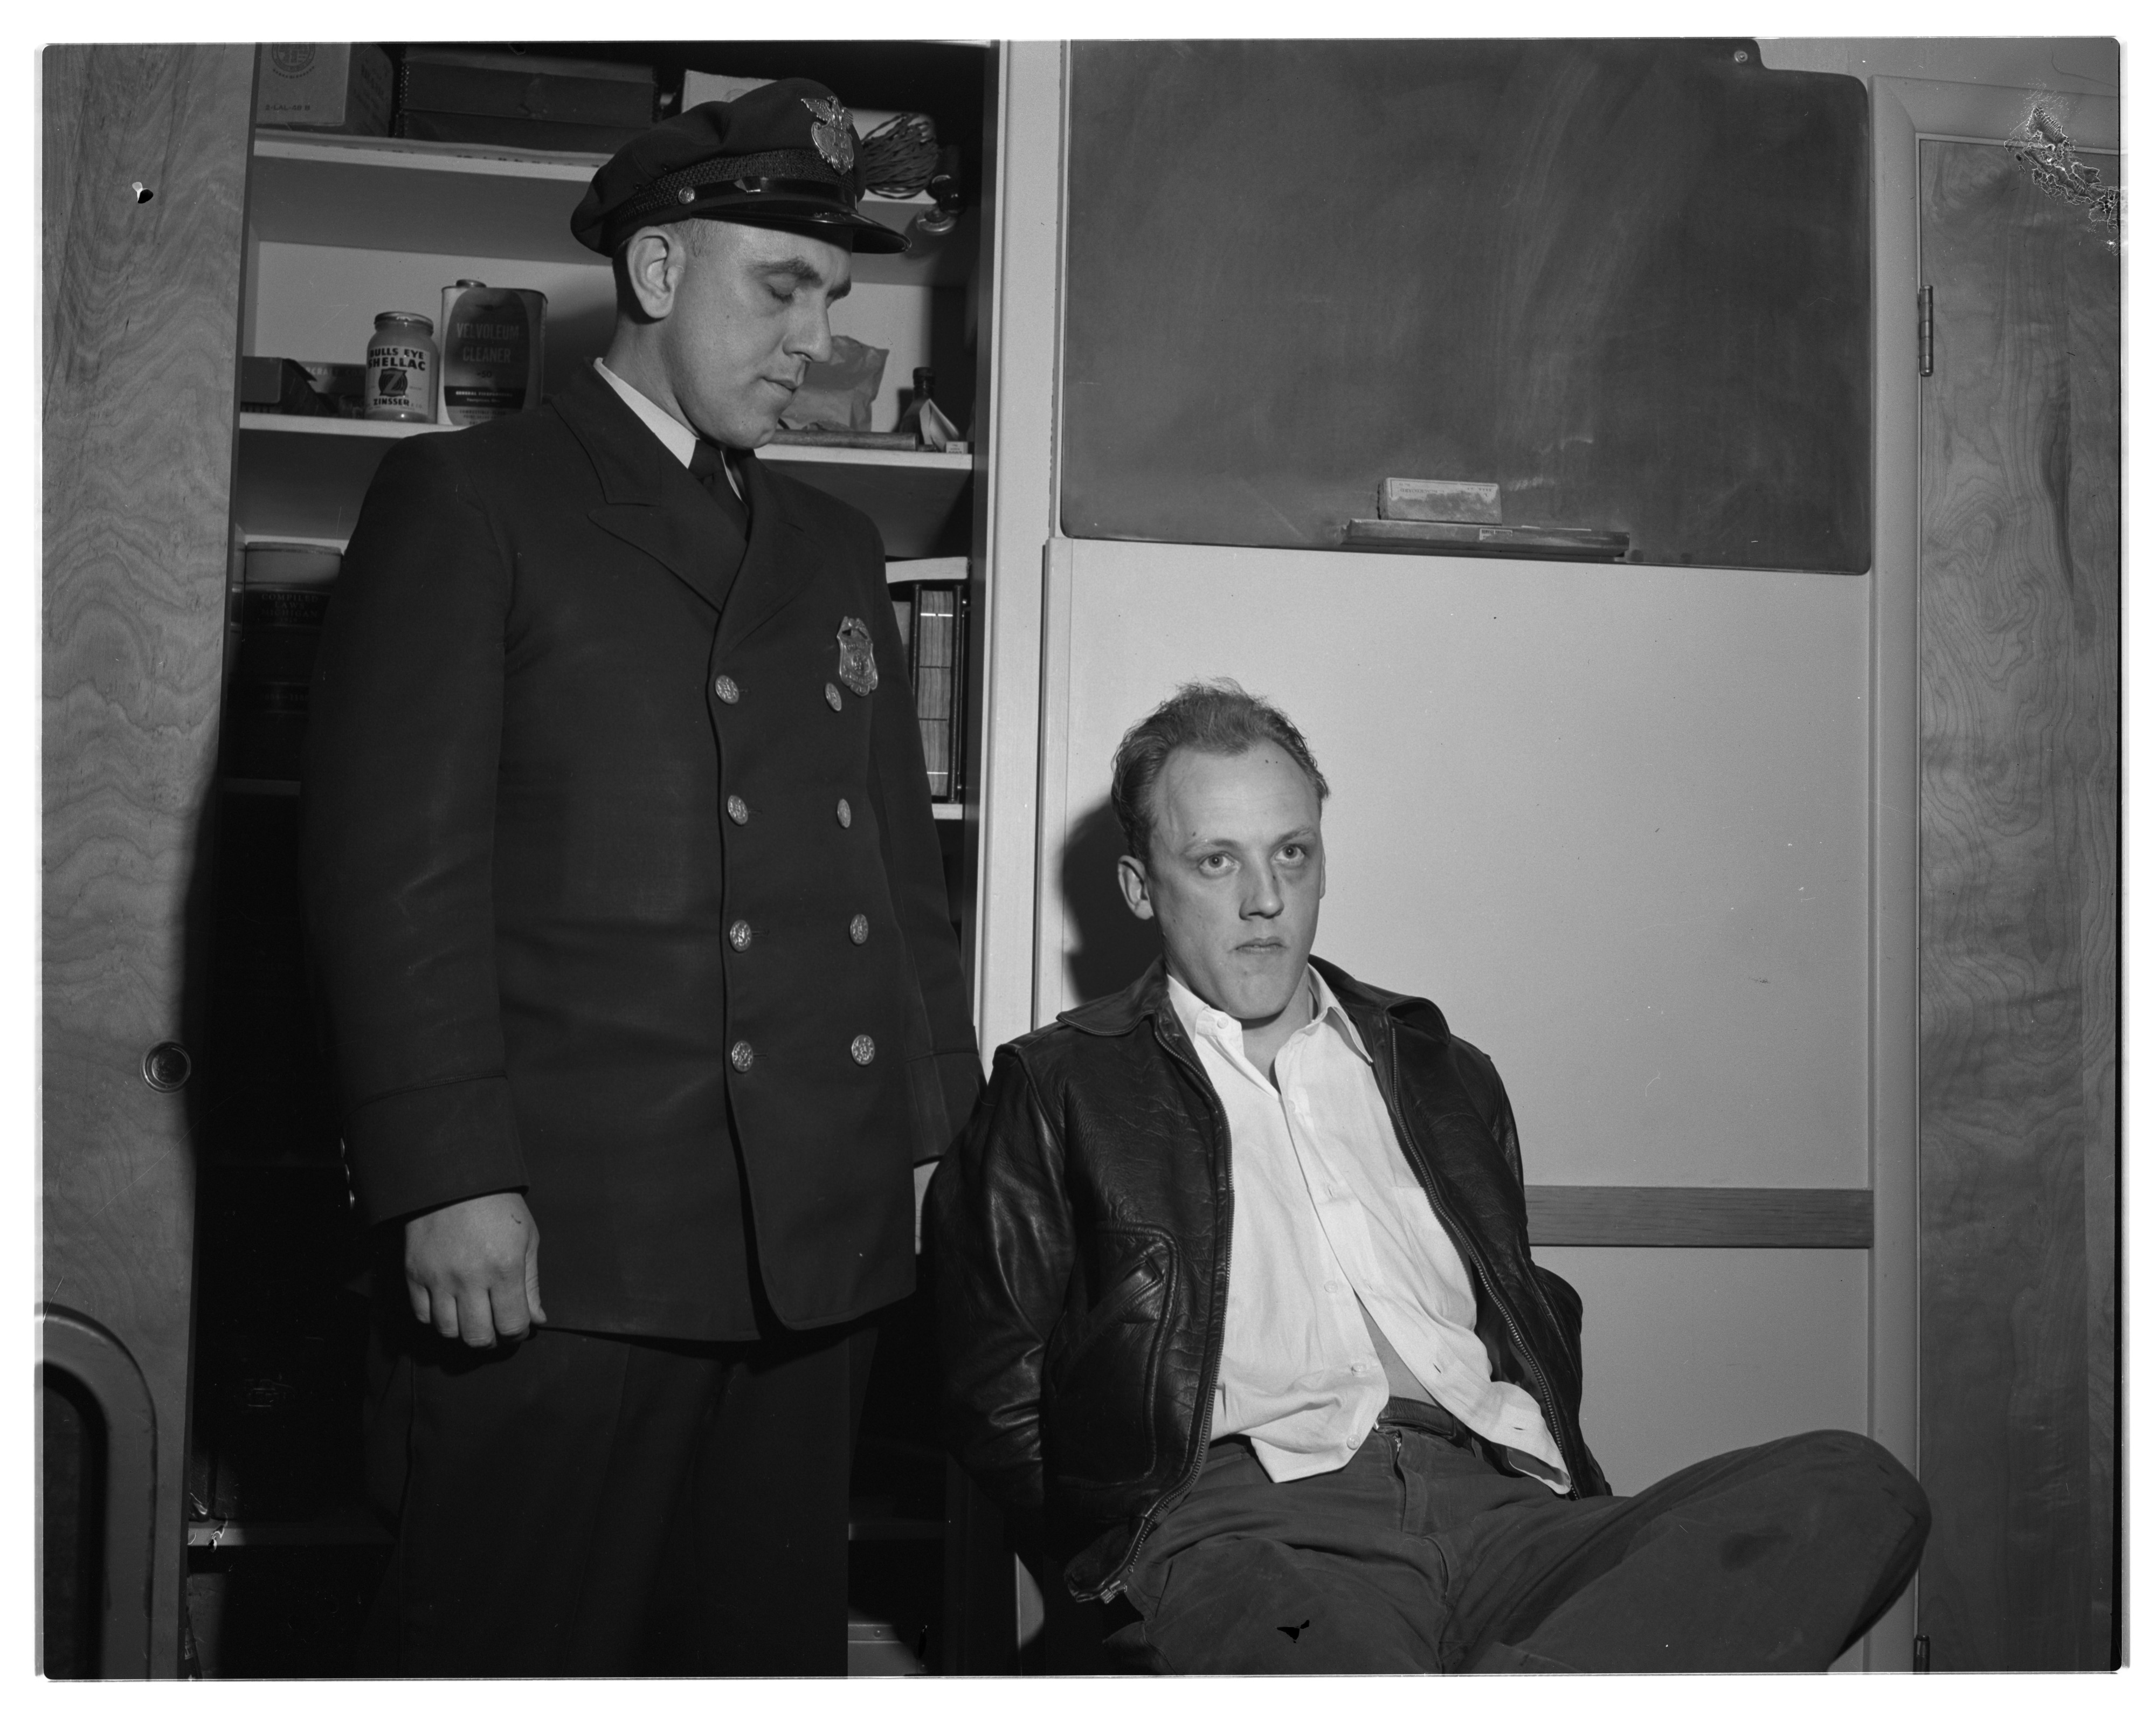 Ann Arbor Police Officer George Miller With Pinckney Bank Robbery Suspect Robert Davidson, March 1956 image